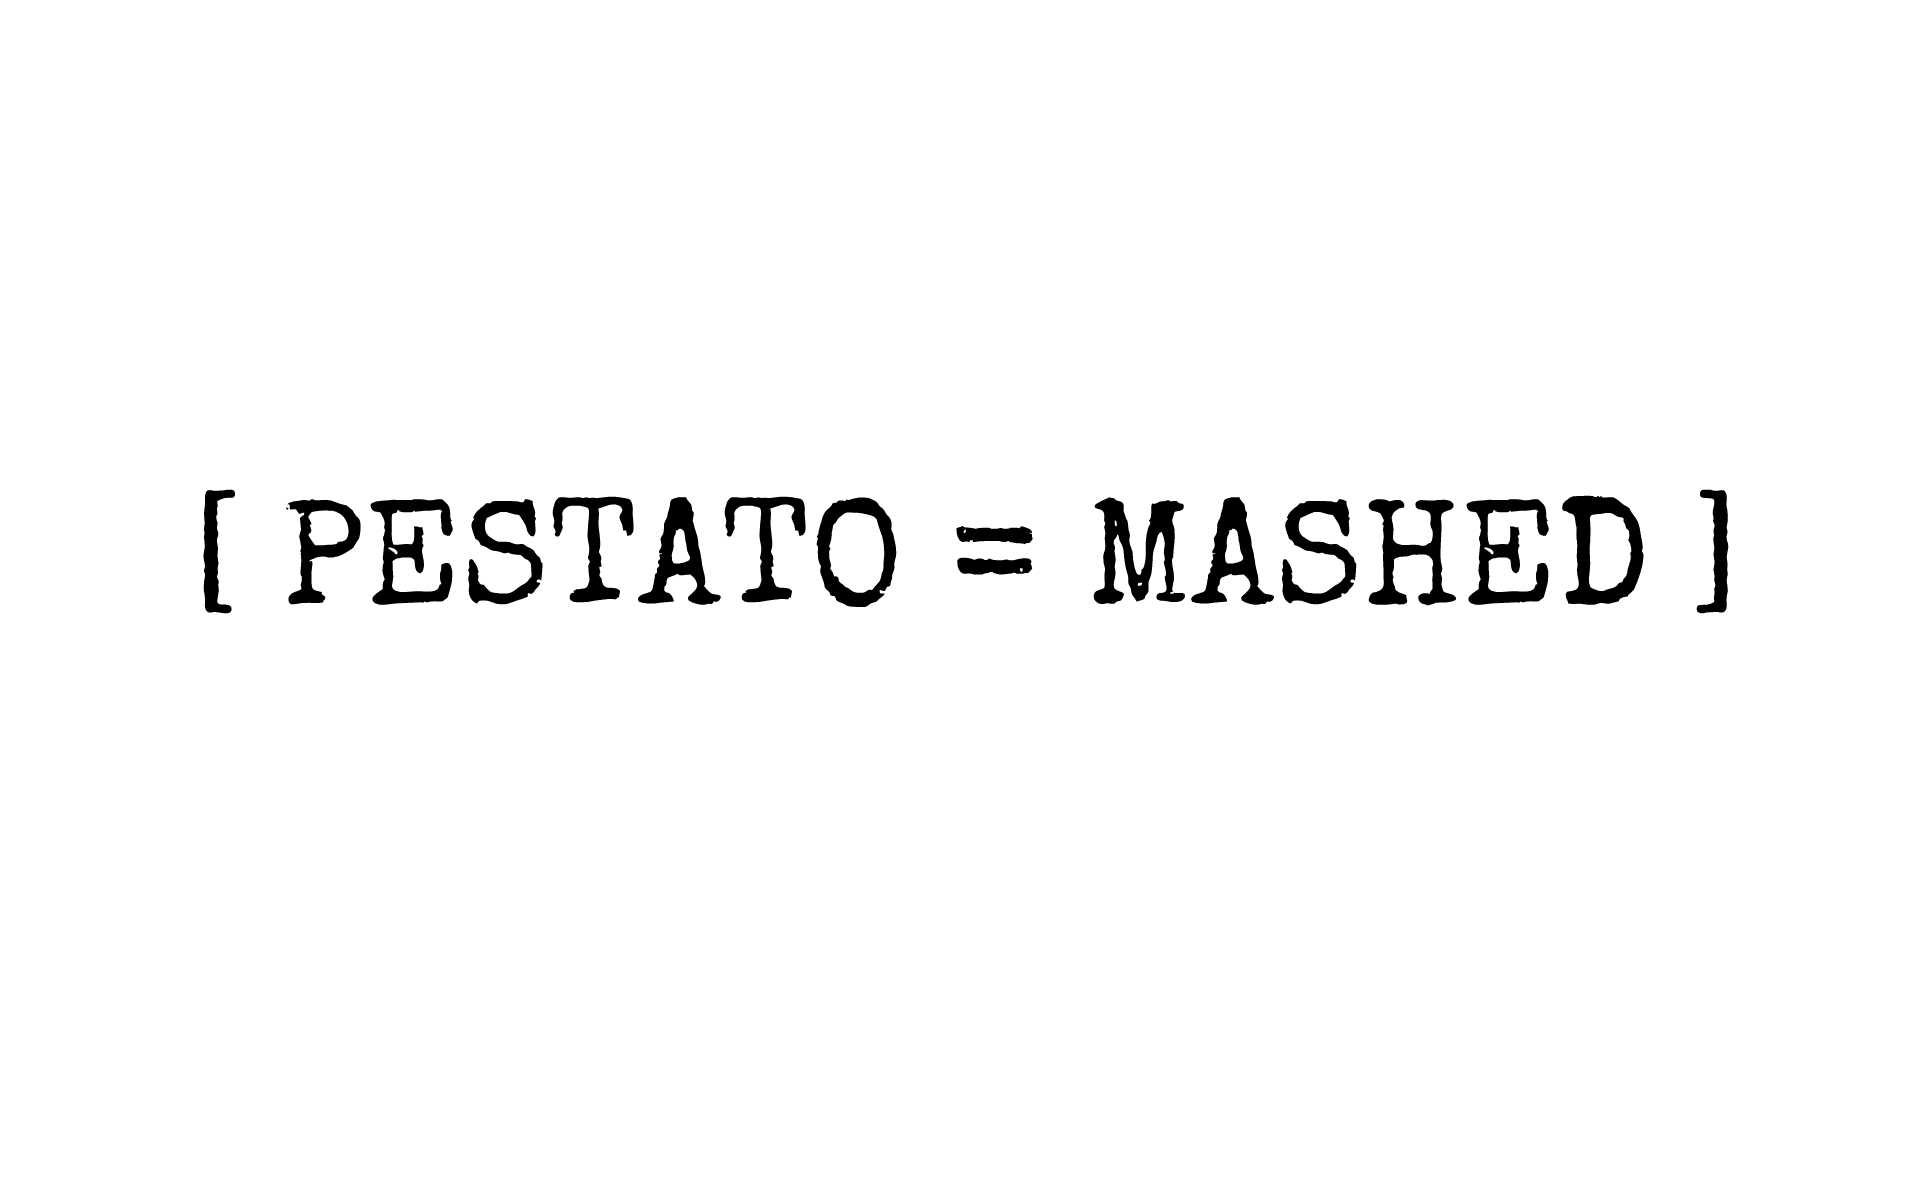 PESTATO MASHED